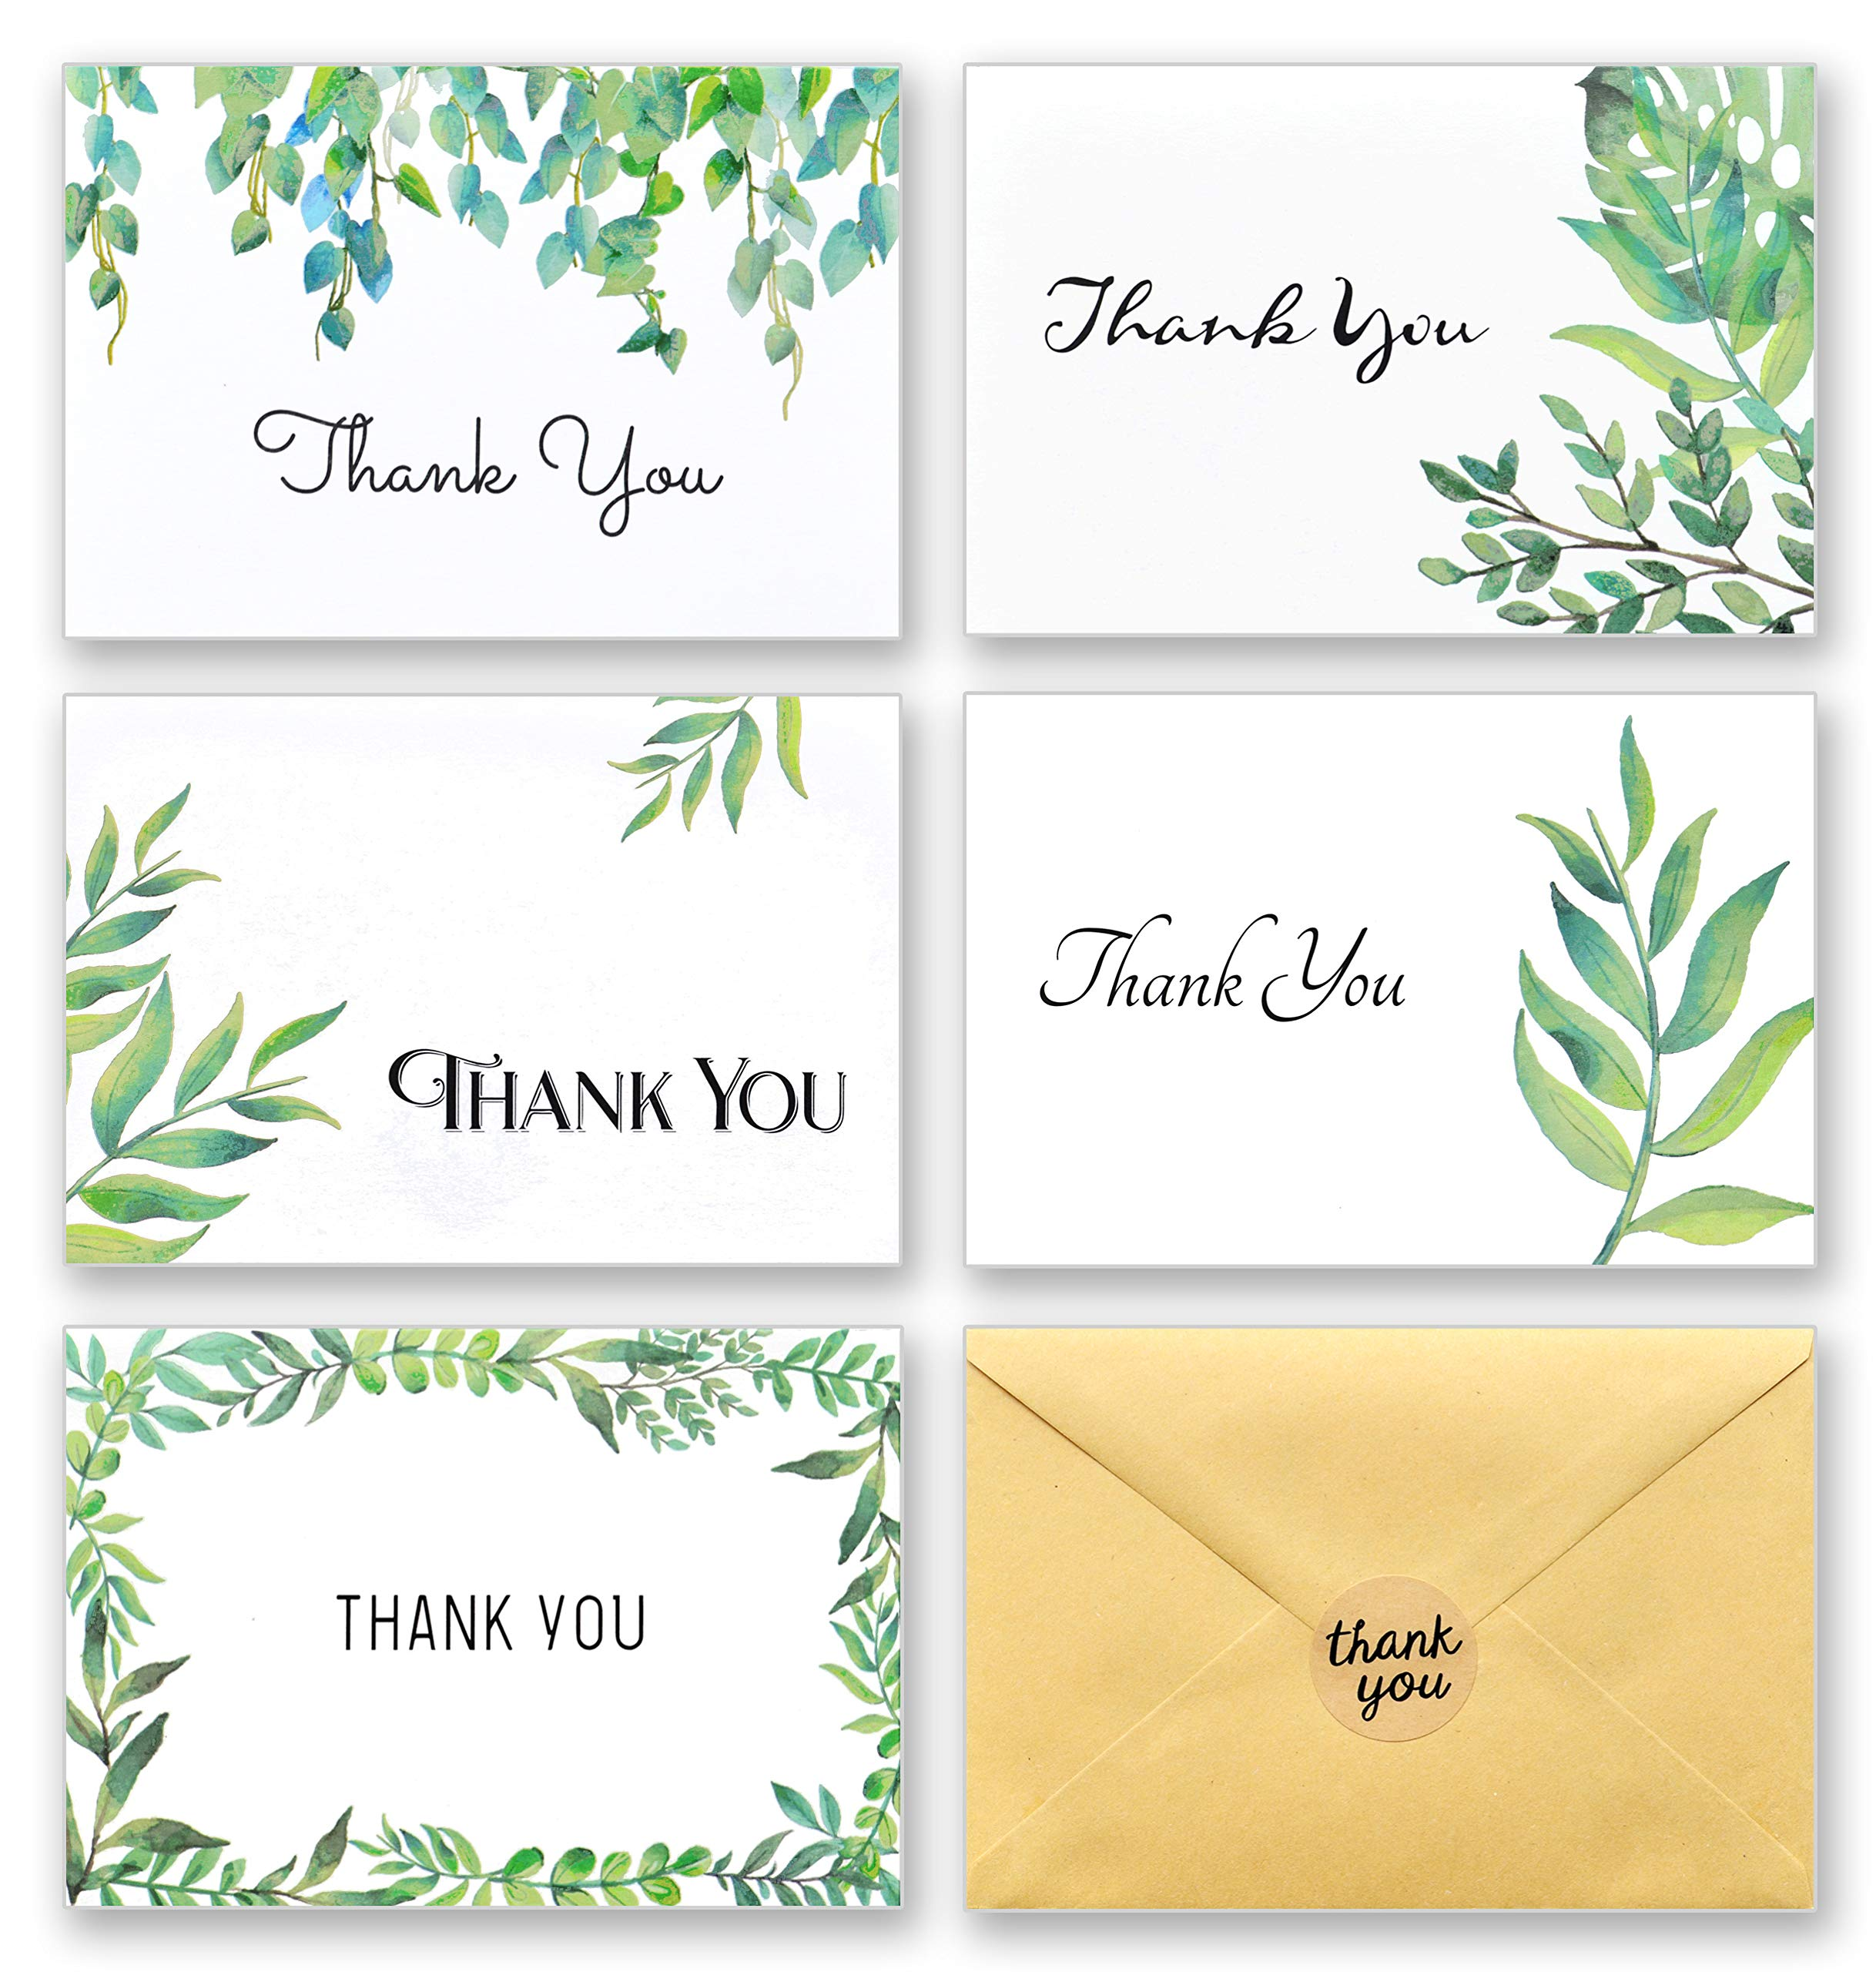 100 Thank You Cards with Envelopes and Stickers - White Kraft Paper Watercolor Floral, Greenery Leaves Bulk Notes for Gratitude - 5 Design Foliage Cards for Wedding, Baby Shower and All Occasions 4x6 by T&M Quality Designs